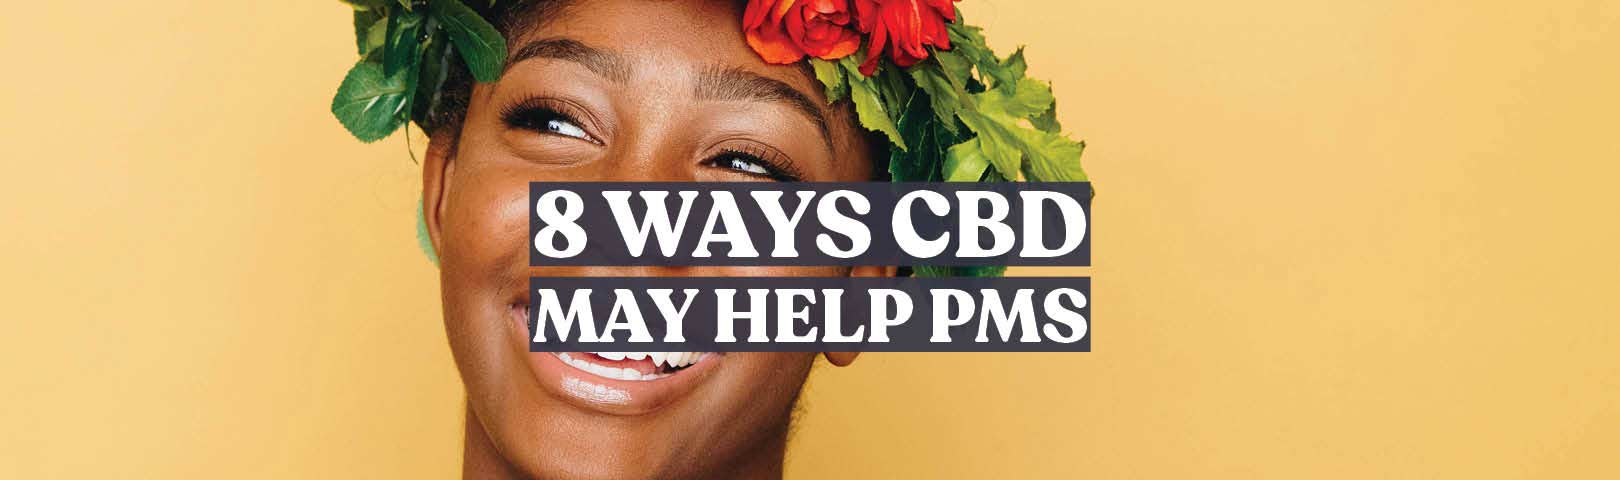 cbd for pms and period pains